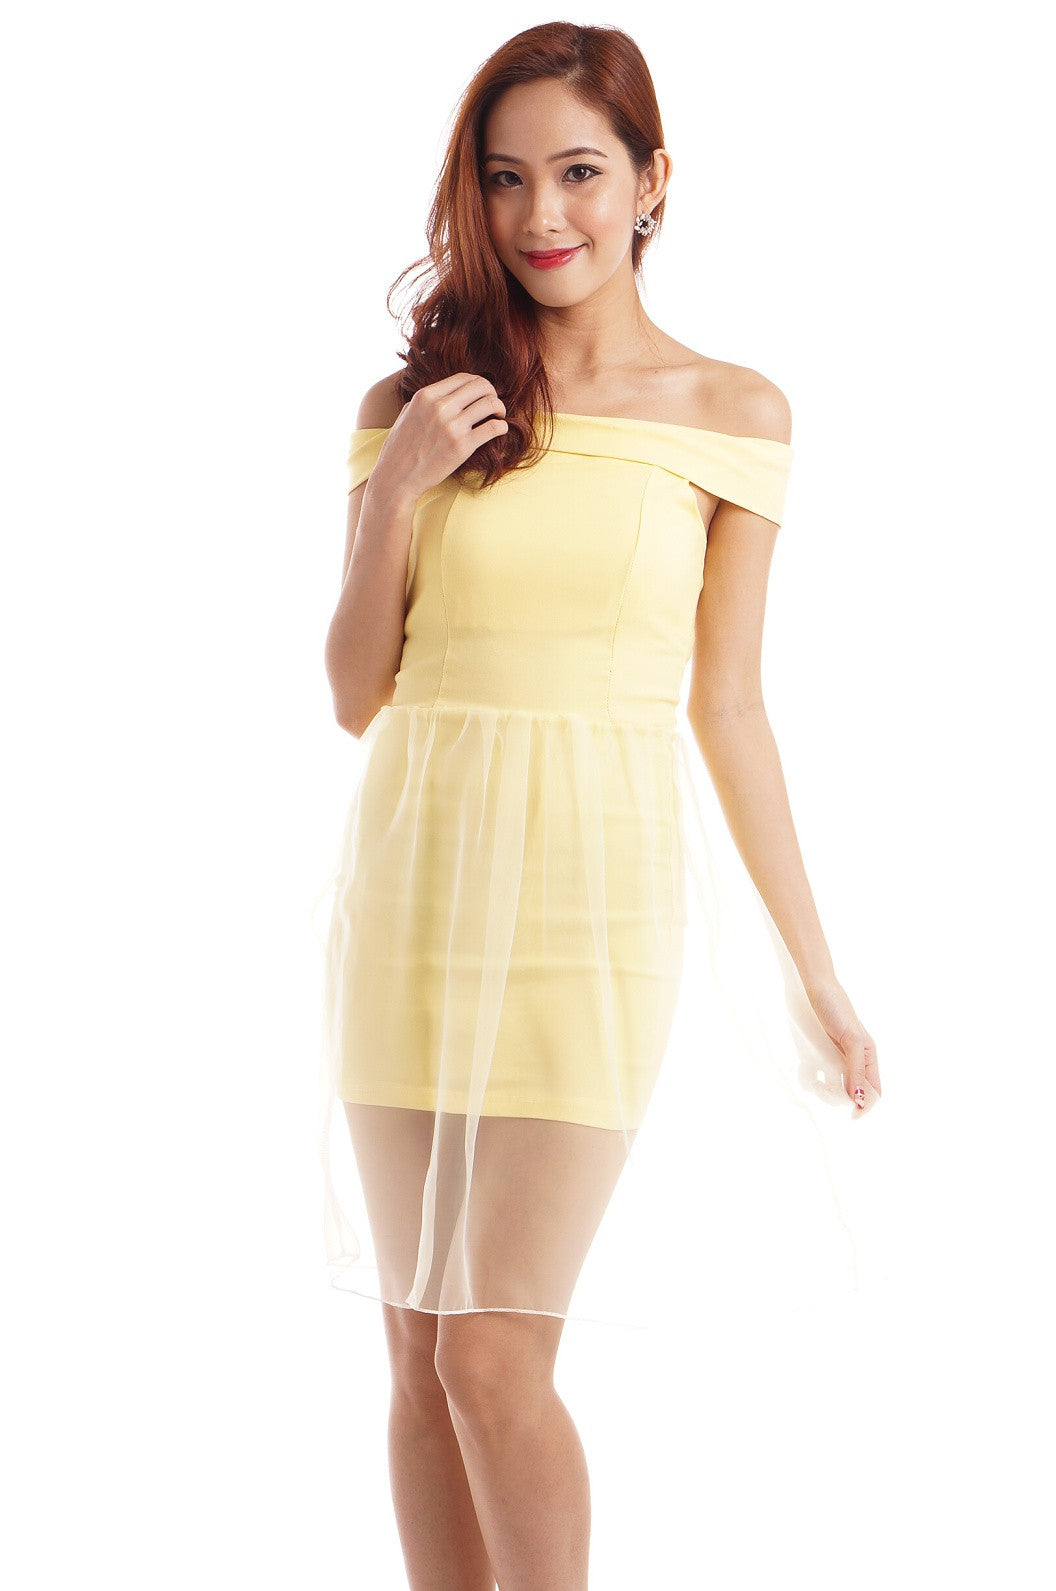 XENA ORGANZA OVERLAY DRESS IN DAFFODIL